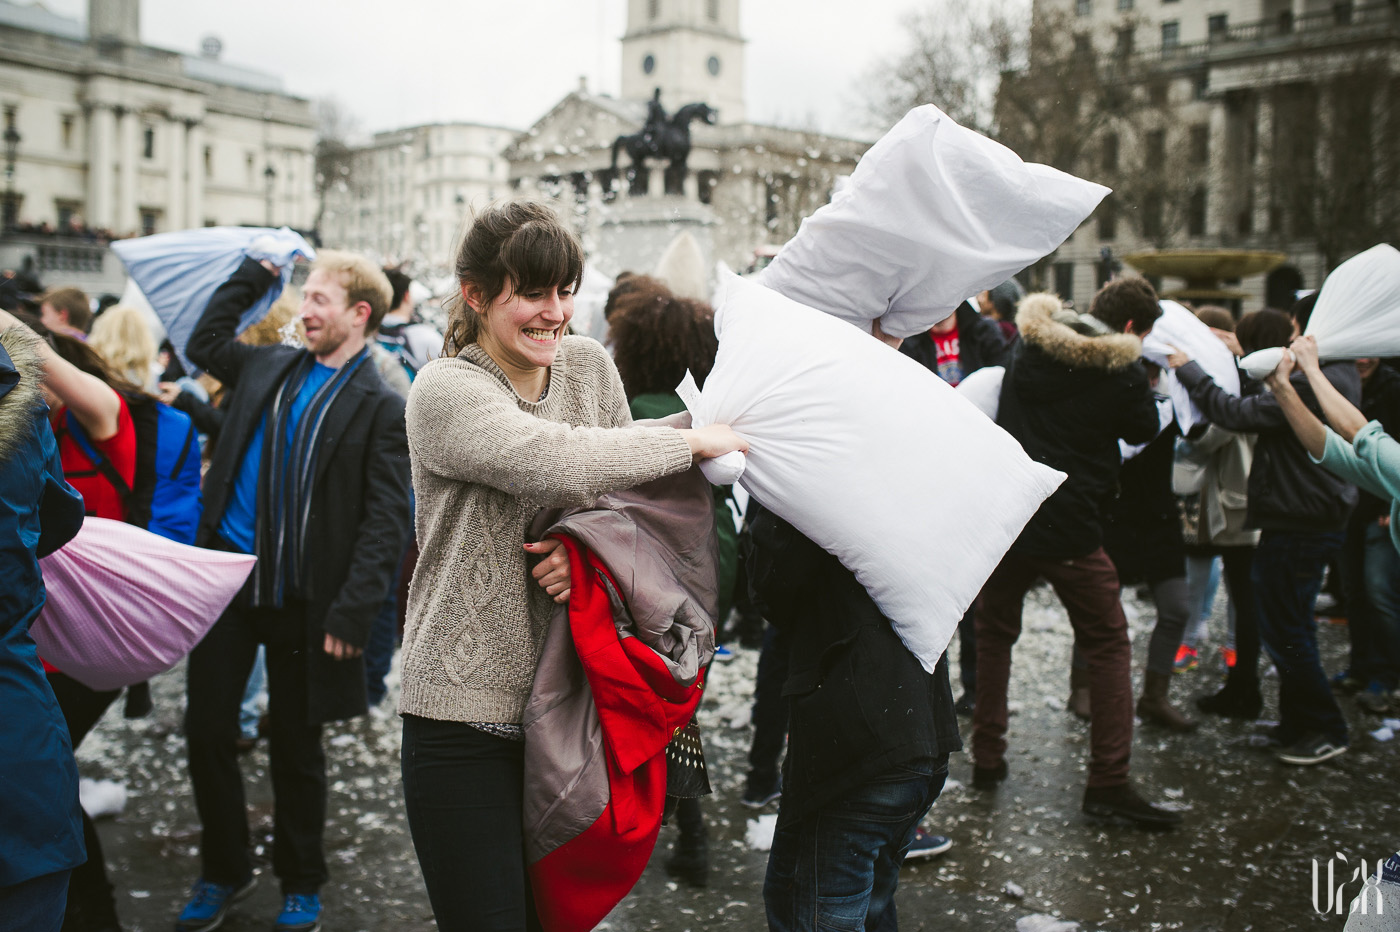 International Pillow Fight Day In London 2015 Street Photography Pagalviu Musis 23